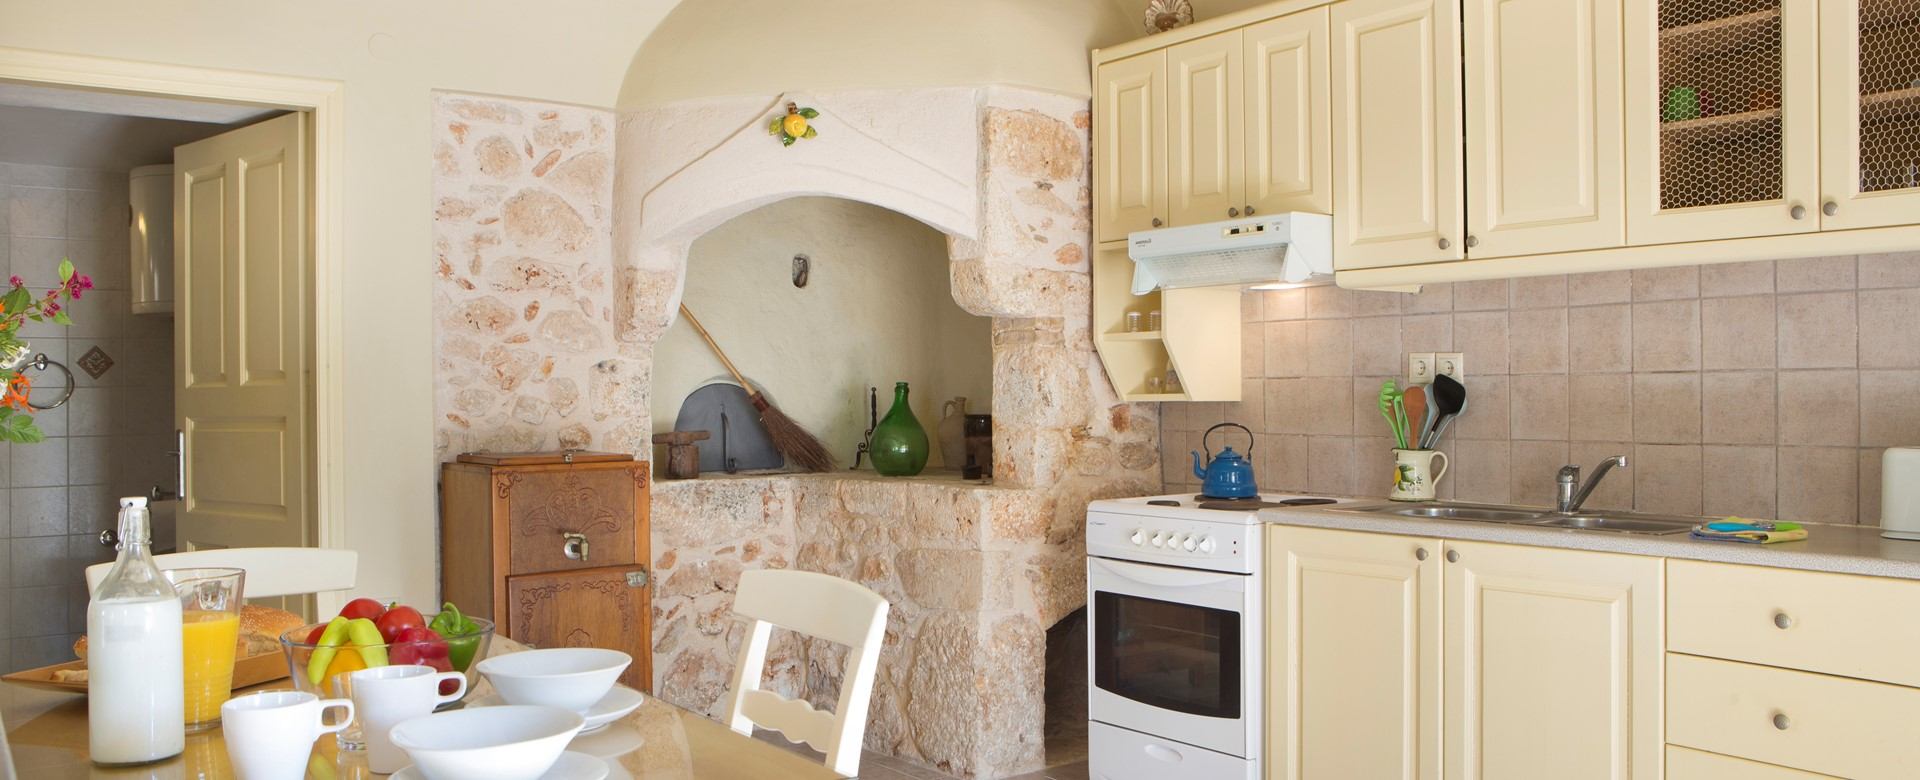 Dining and kitchen inside Lemoni Cottage, Fiscardo, Kefalonia